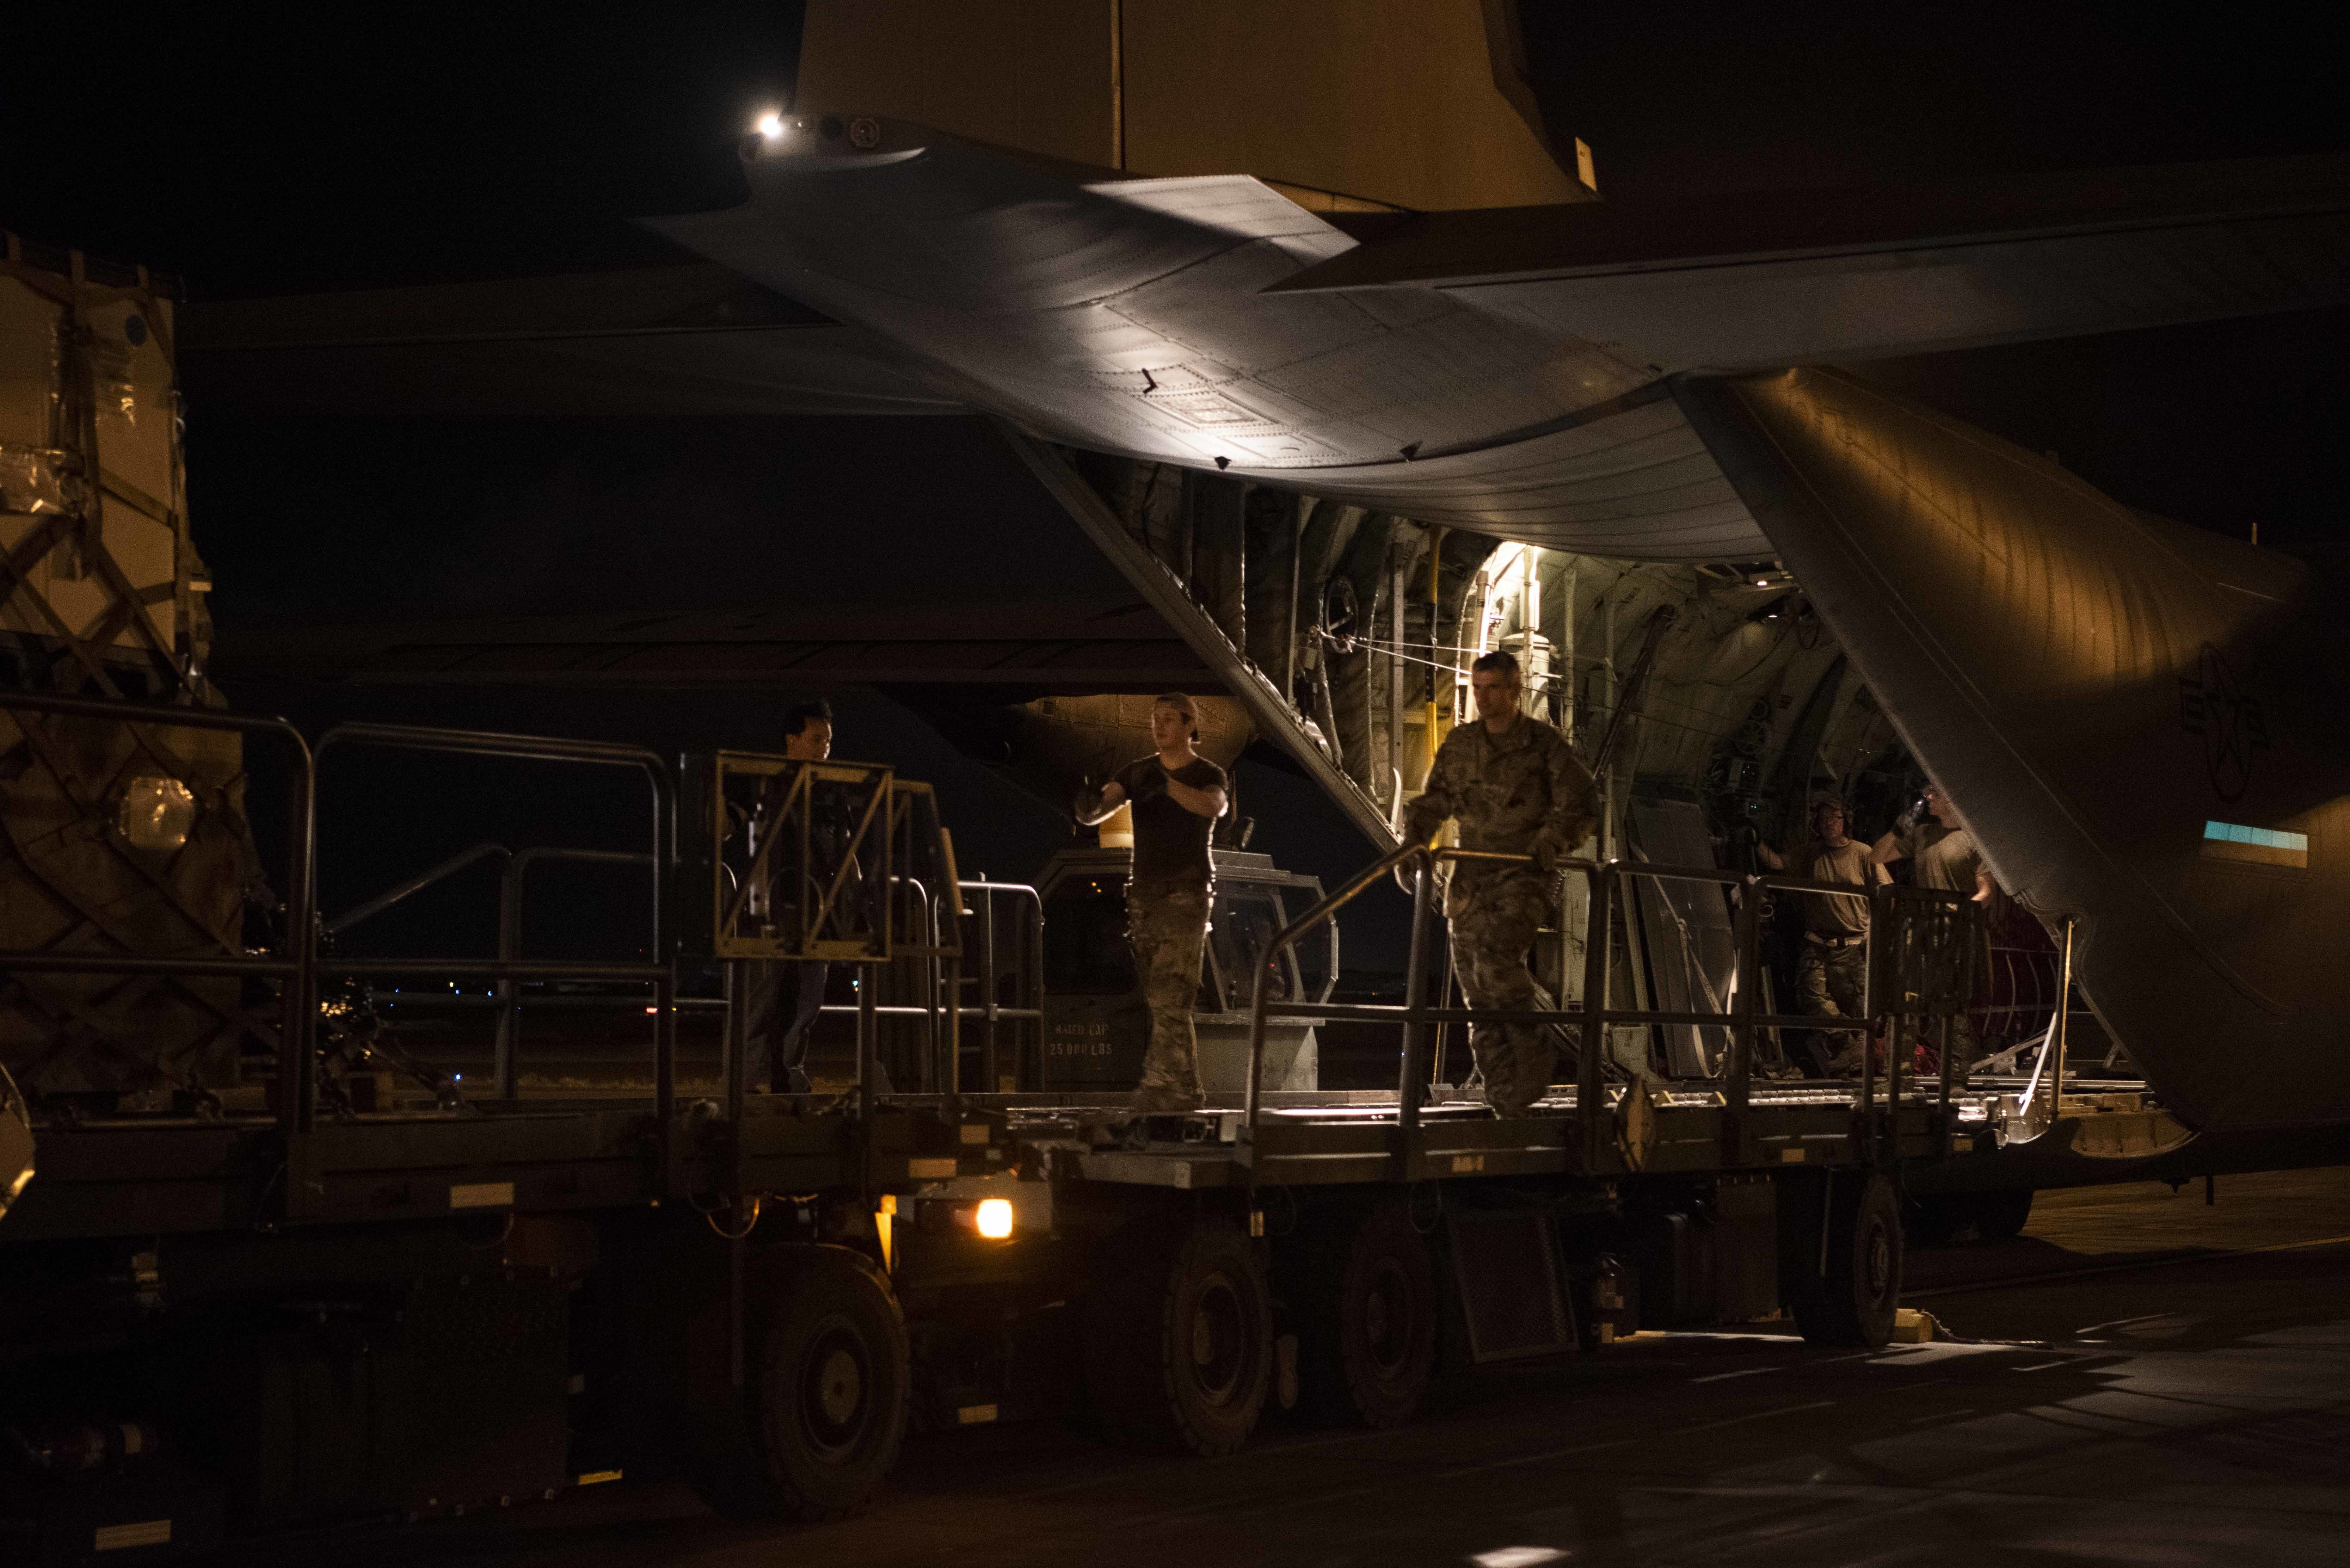 A C-130J Super Hercules transports cargo loaded by U.S. Air Force Airmen assigned to the 75th Expeditionary Airlift Squadron (EAS), in Djibouti, Apr. 27, 2020. The 75th EAS provides strategic airlift capabilities across the Combined Joint Task Force-Horn of Africa area of responsibility and is responsible for moving many of the medical supplies pushed to outstations as part of the COVID-19 pandemic response. (U.S. Air Force photo by Tech. Sgt. Ashley Nicole Taylor)